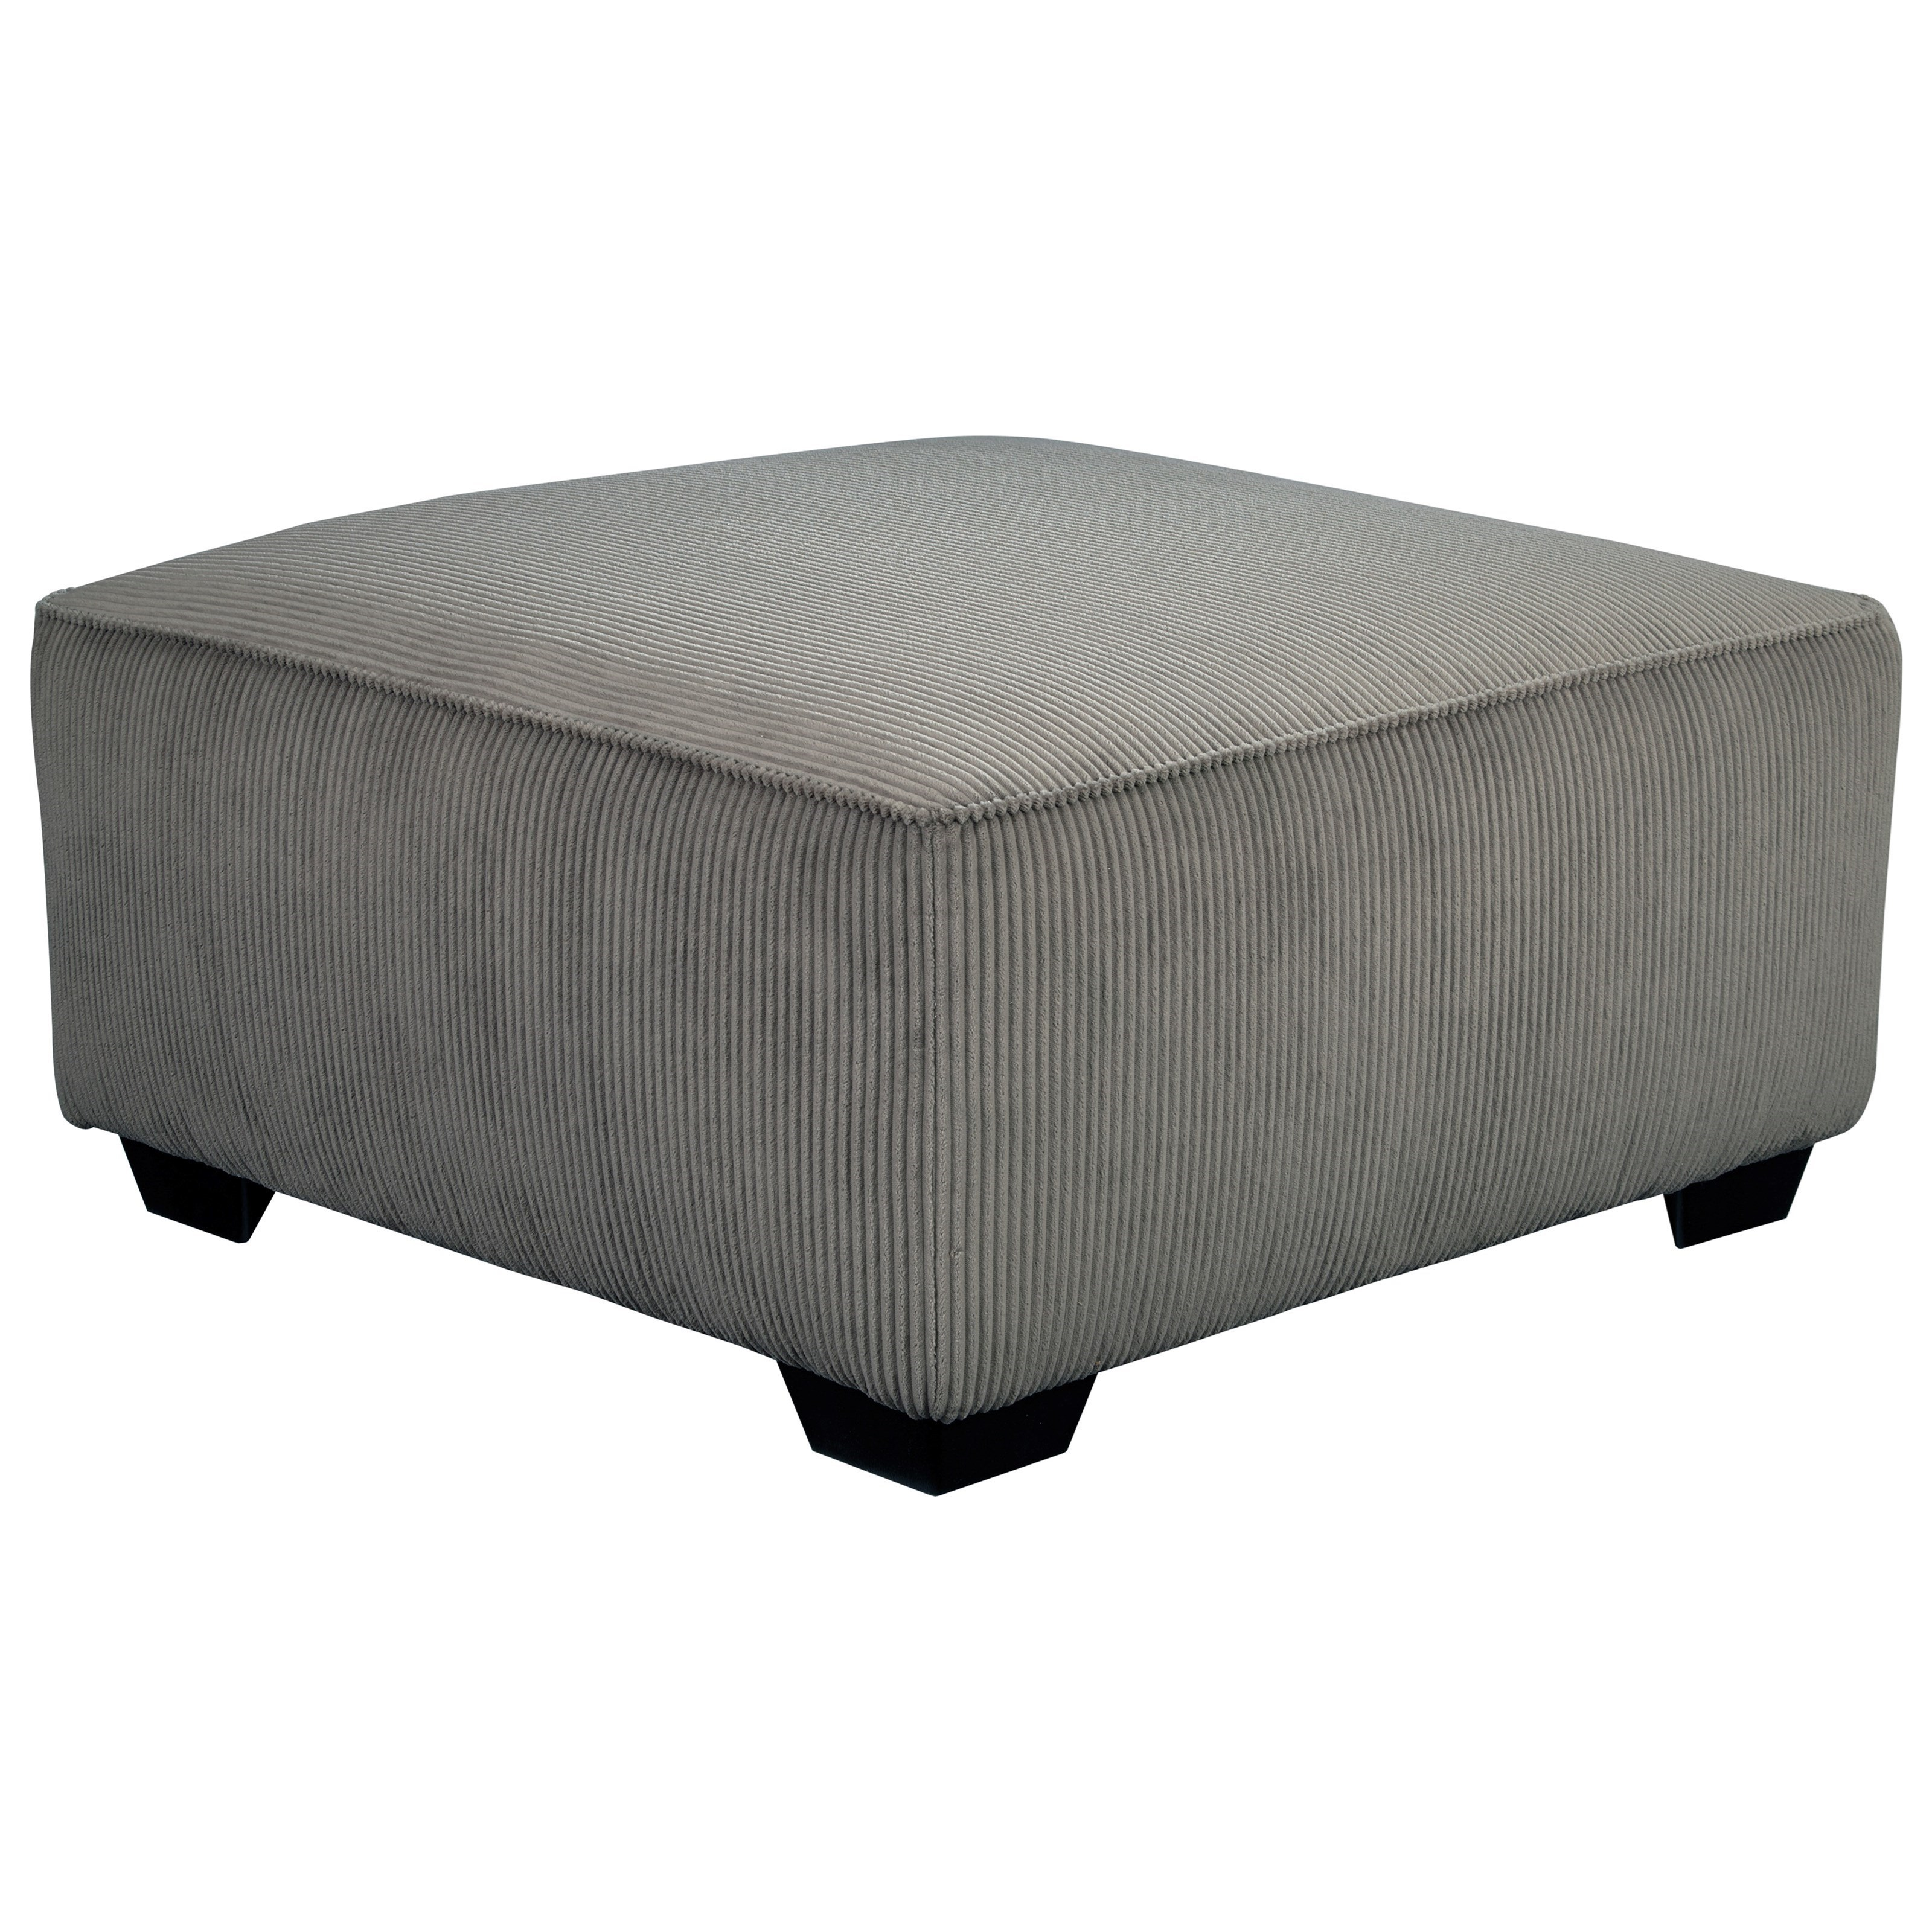 Contemporary oversized accent ottoman in corduroy fabric